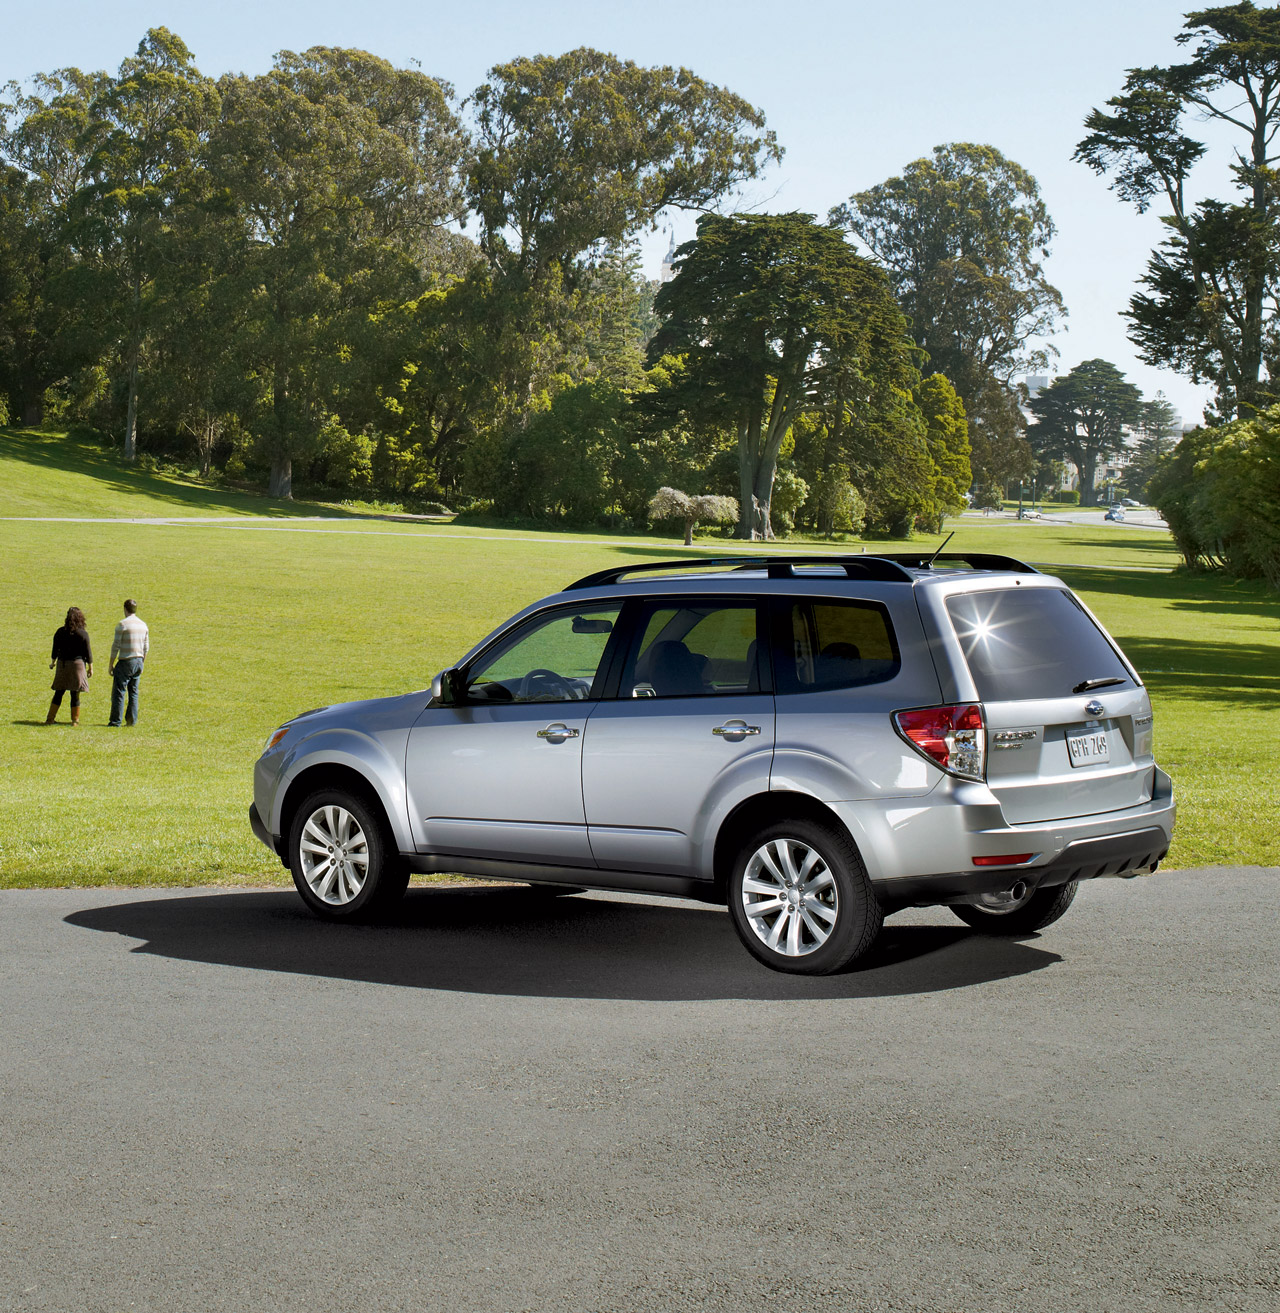 2011 Subaru Forester Images Released